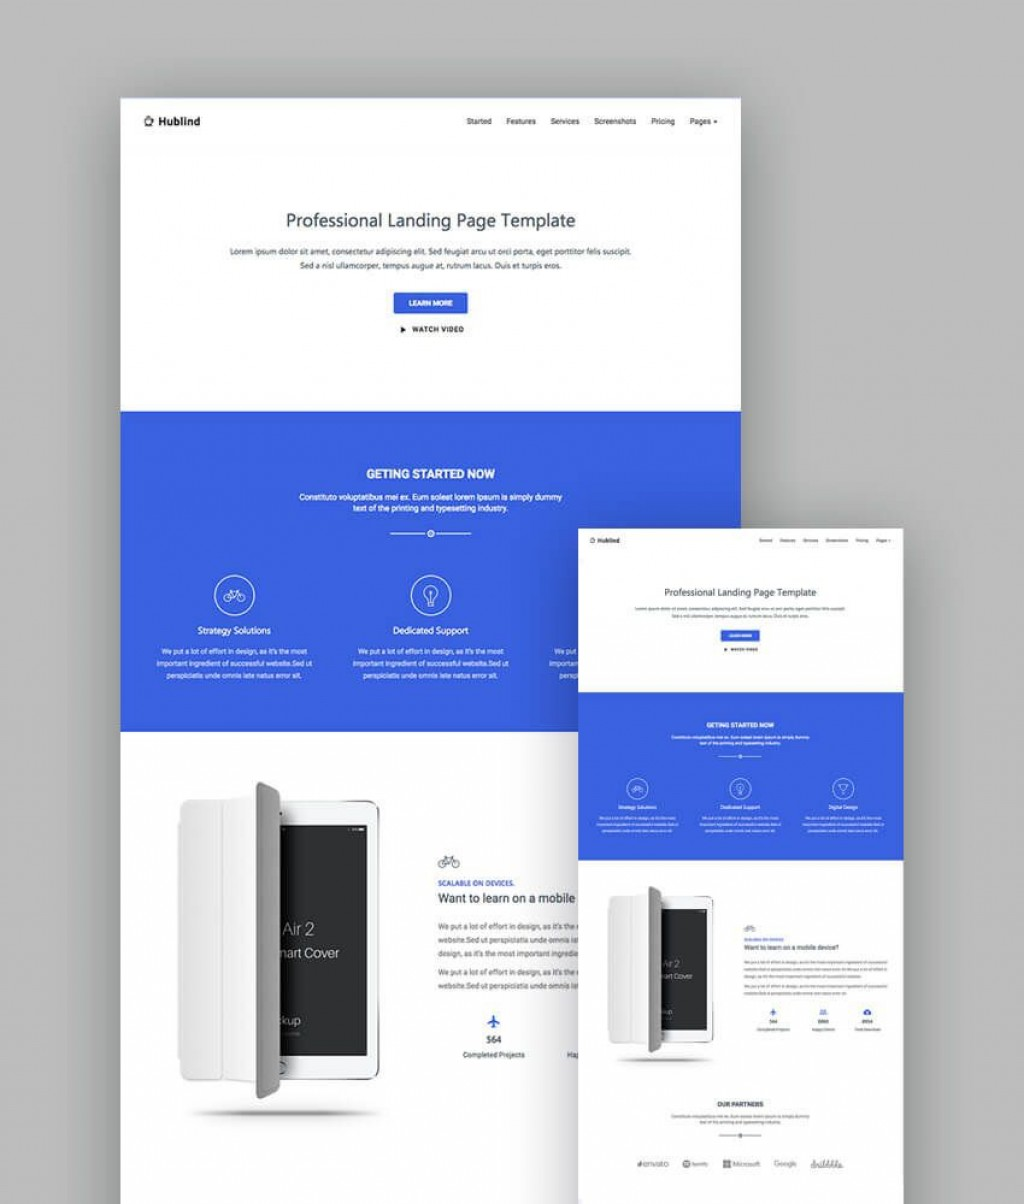 002 Formidable Responsive Landing Page Template Highest Clarity  Templates Html5 Free Download Wordpres HtmlLarge